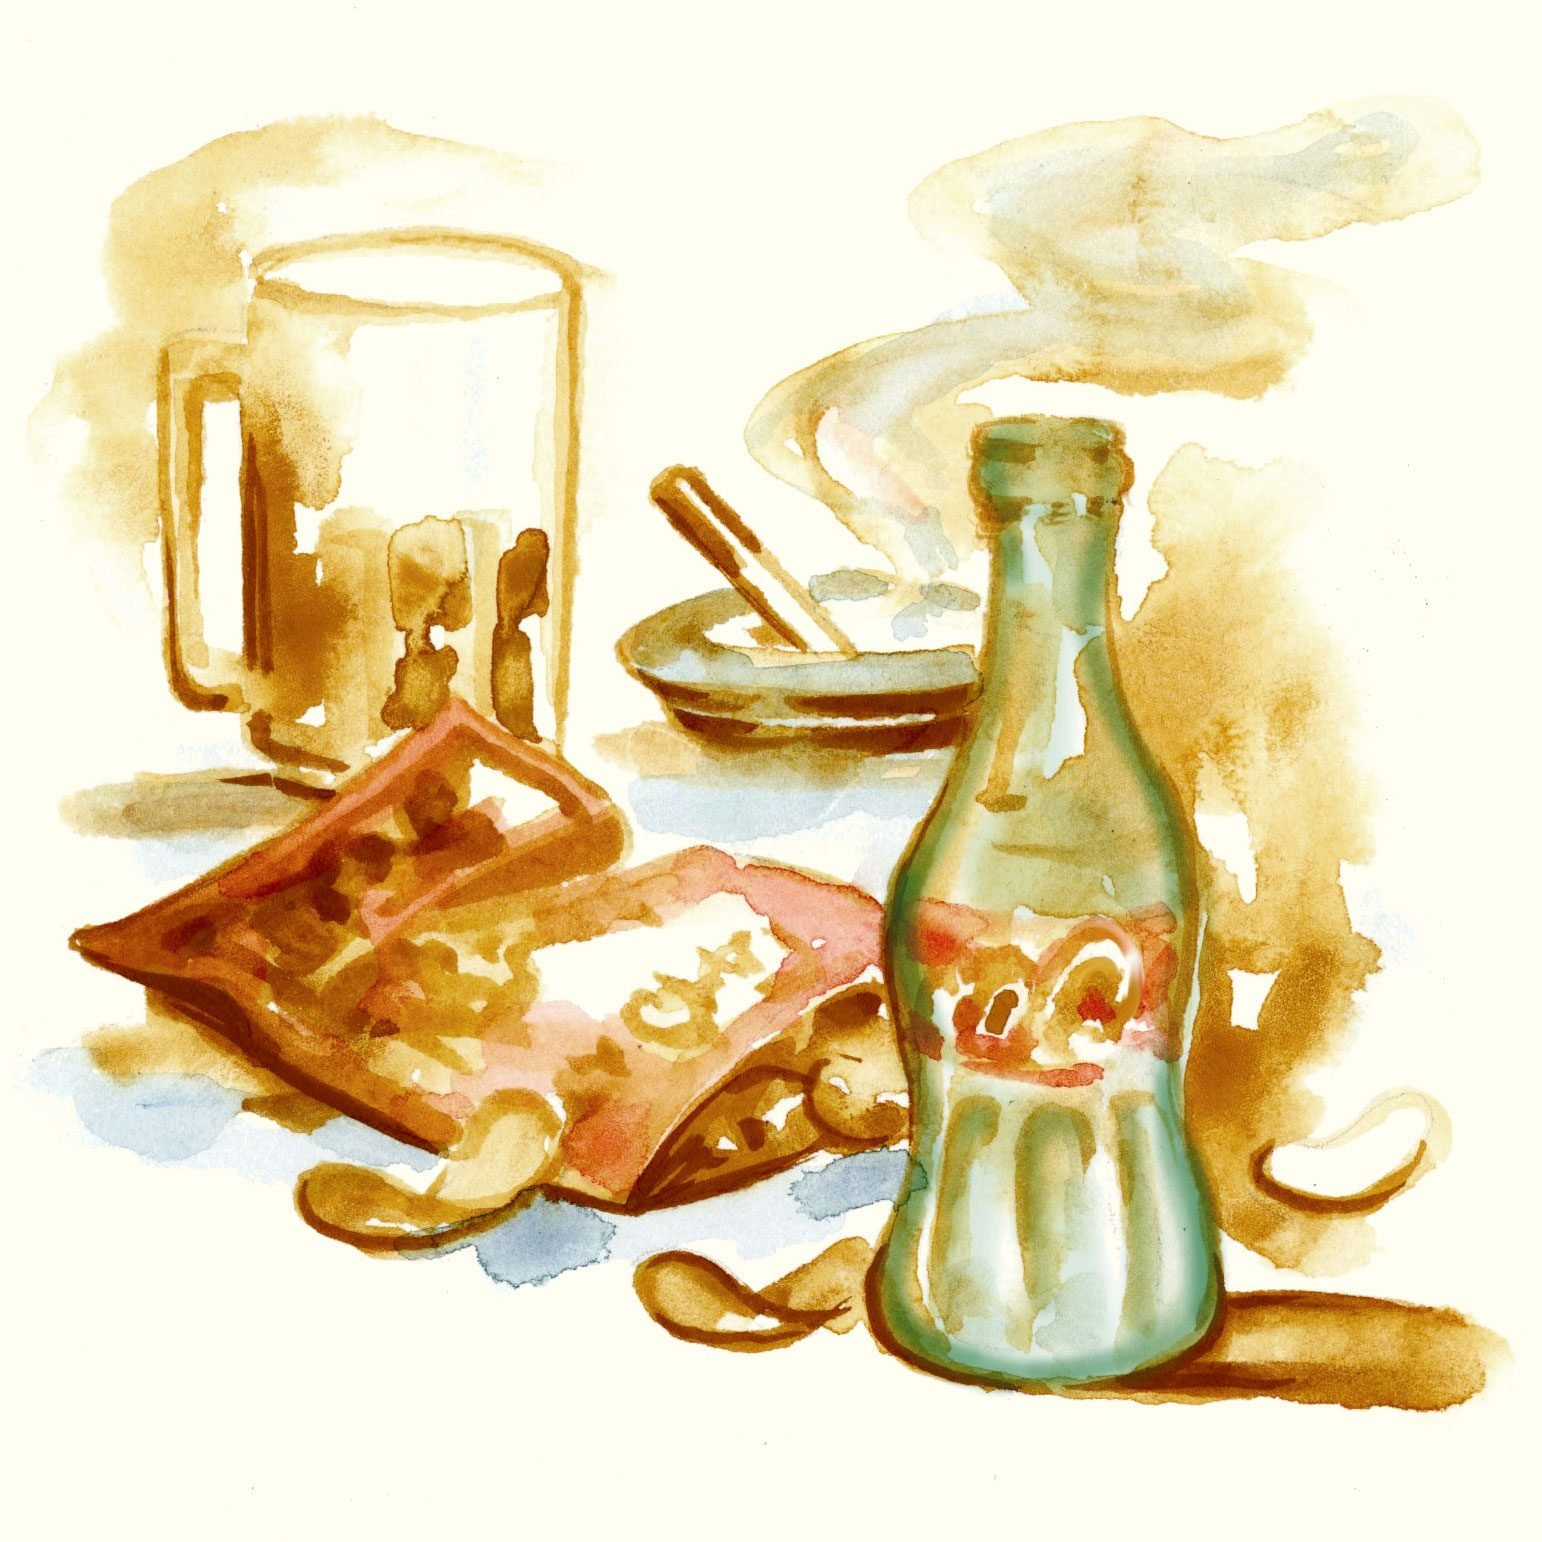 illustration still life of a beer mug, coke bottle, bag of chips, and cigarette in an ashtray